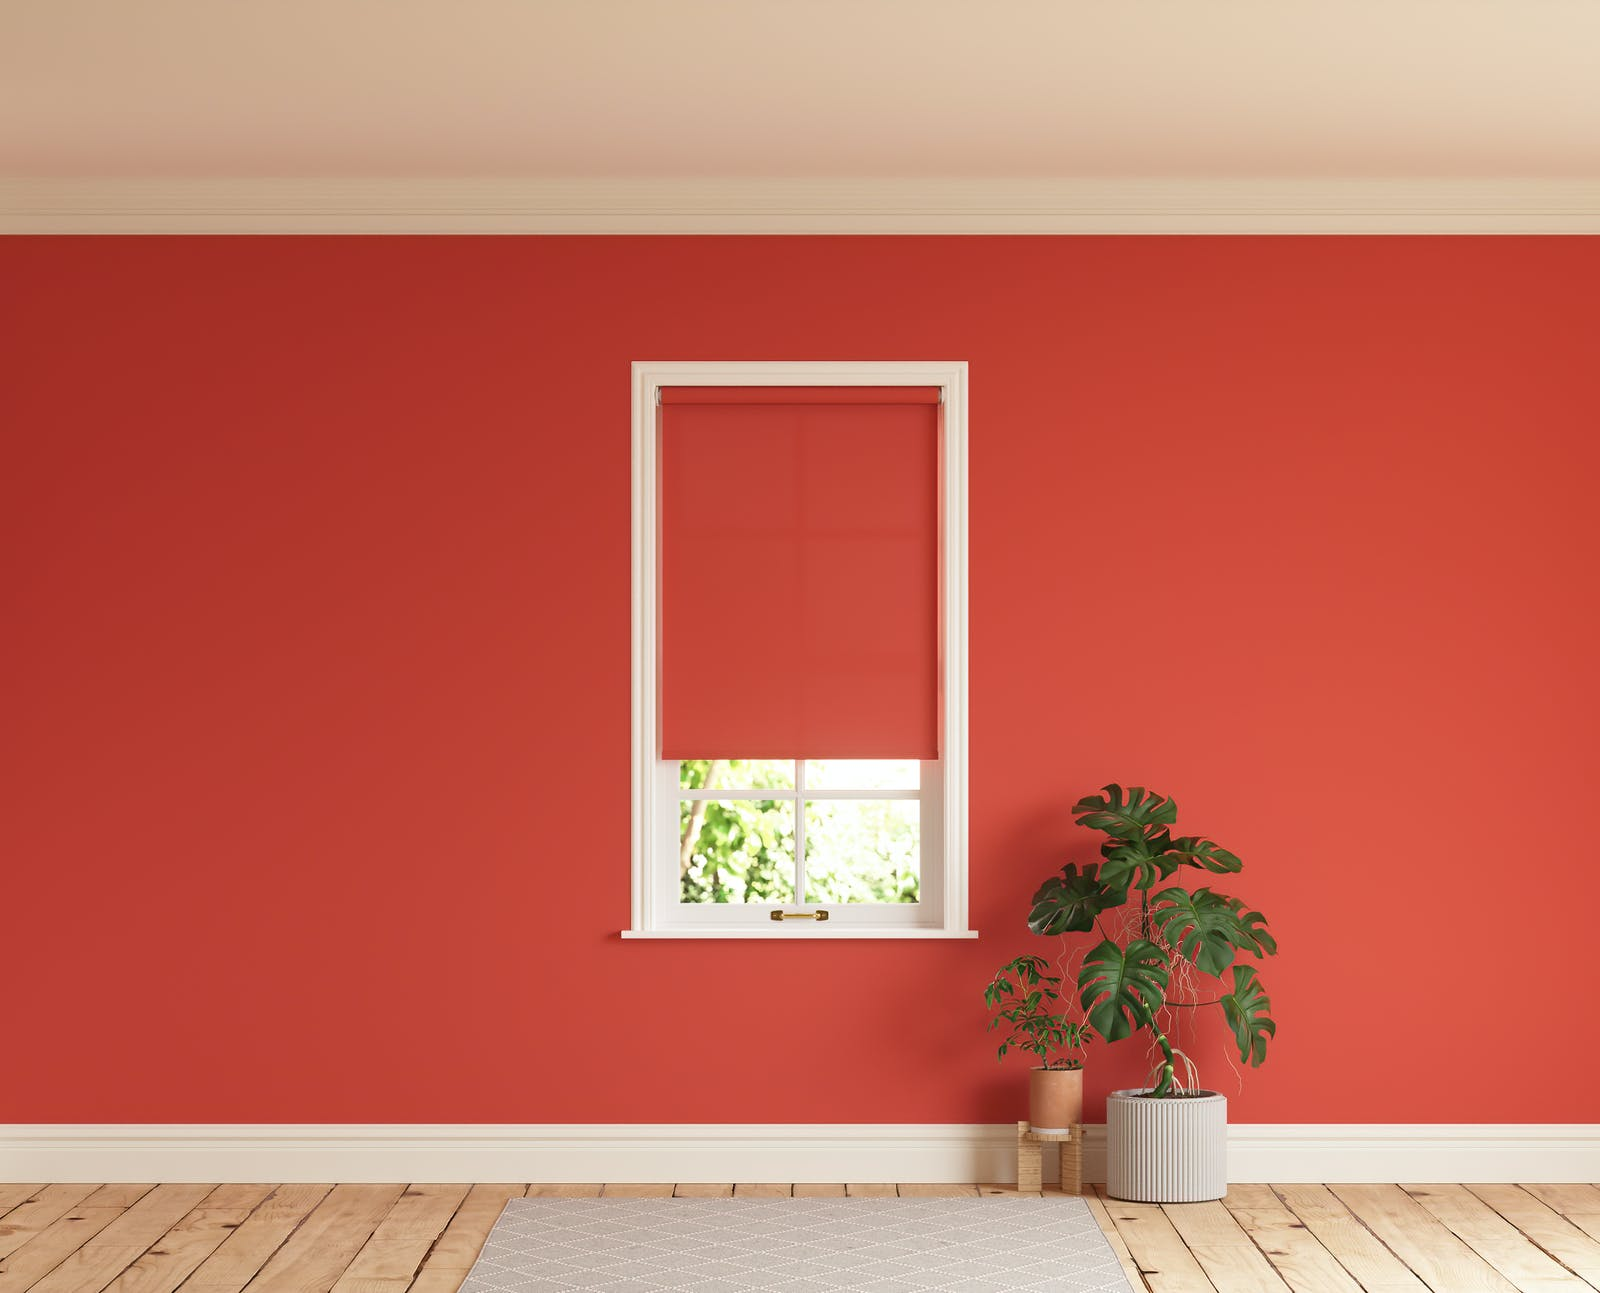 Room with walls painted in Lick Red 02 and Red 02 roller blinds